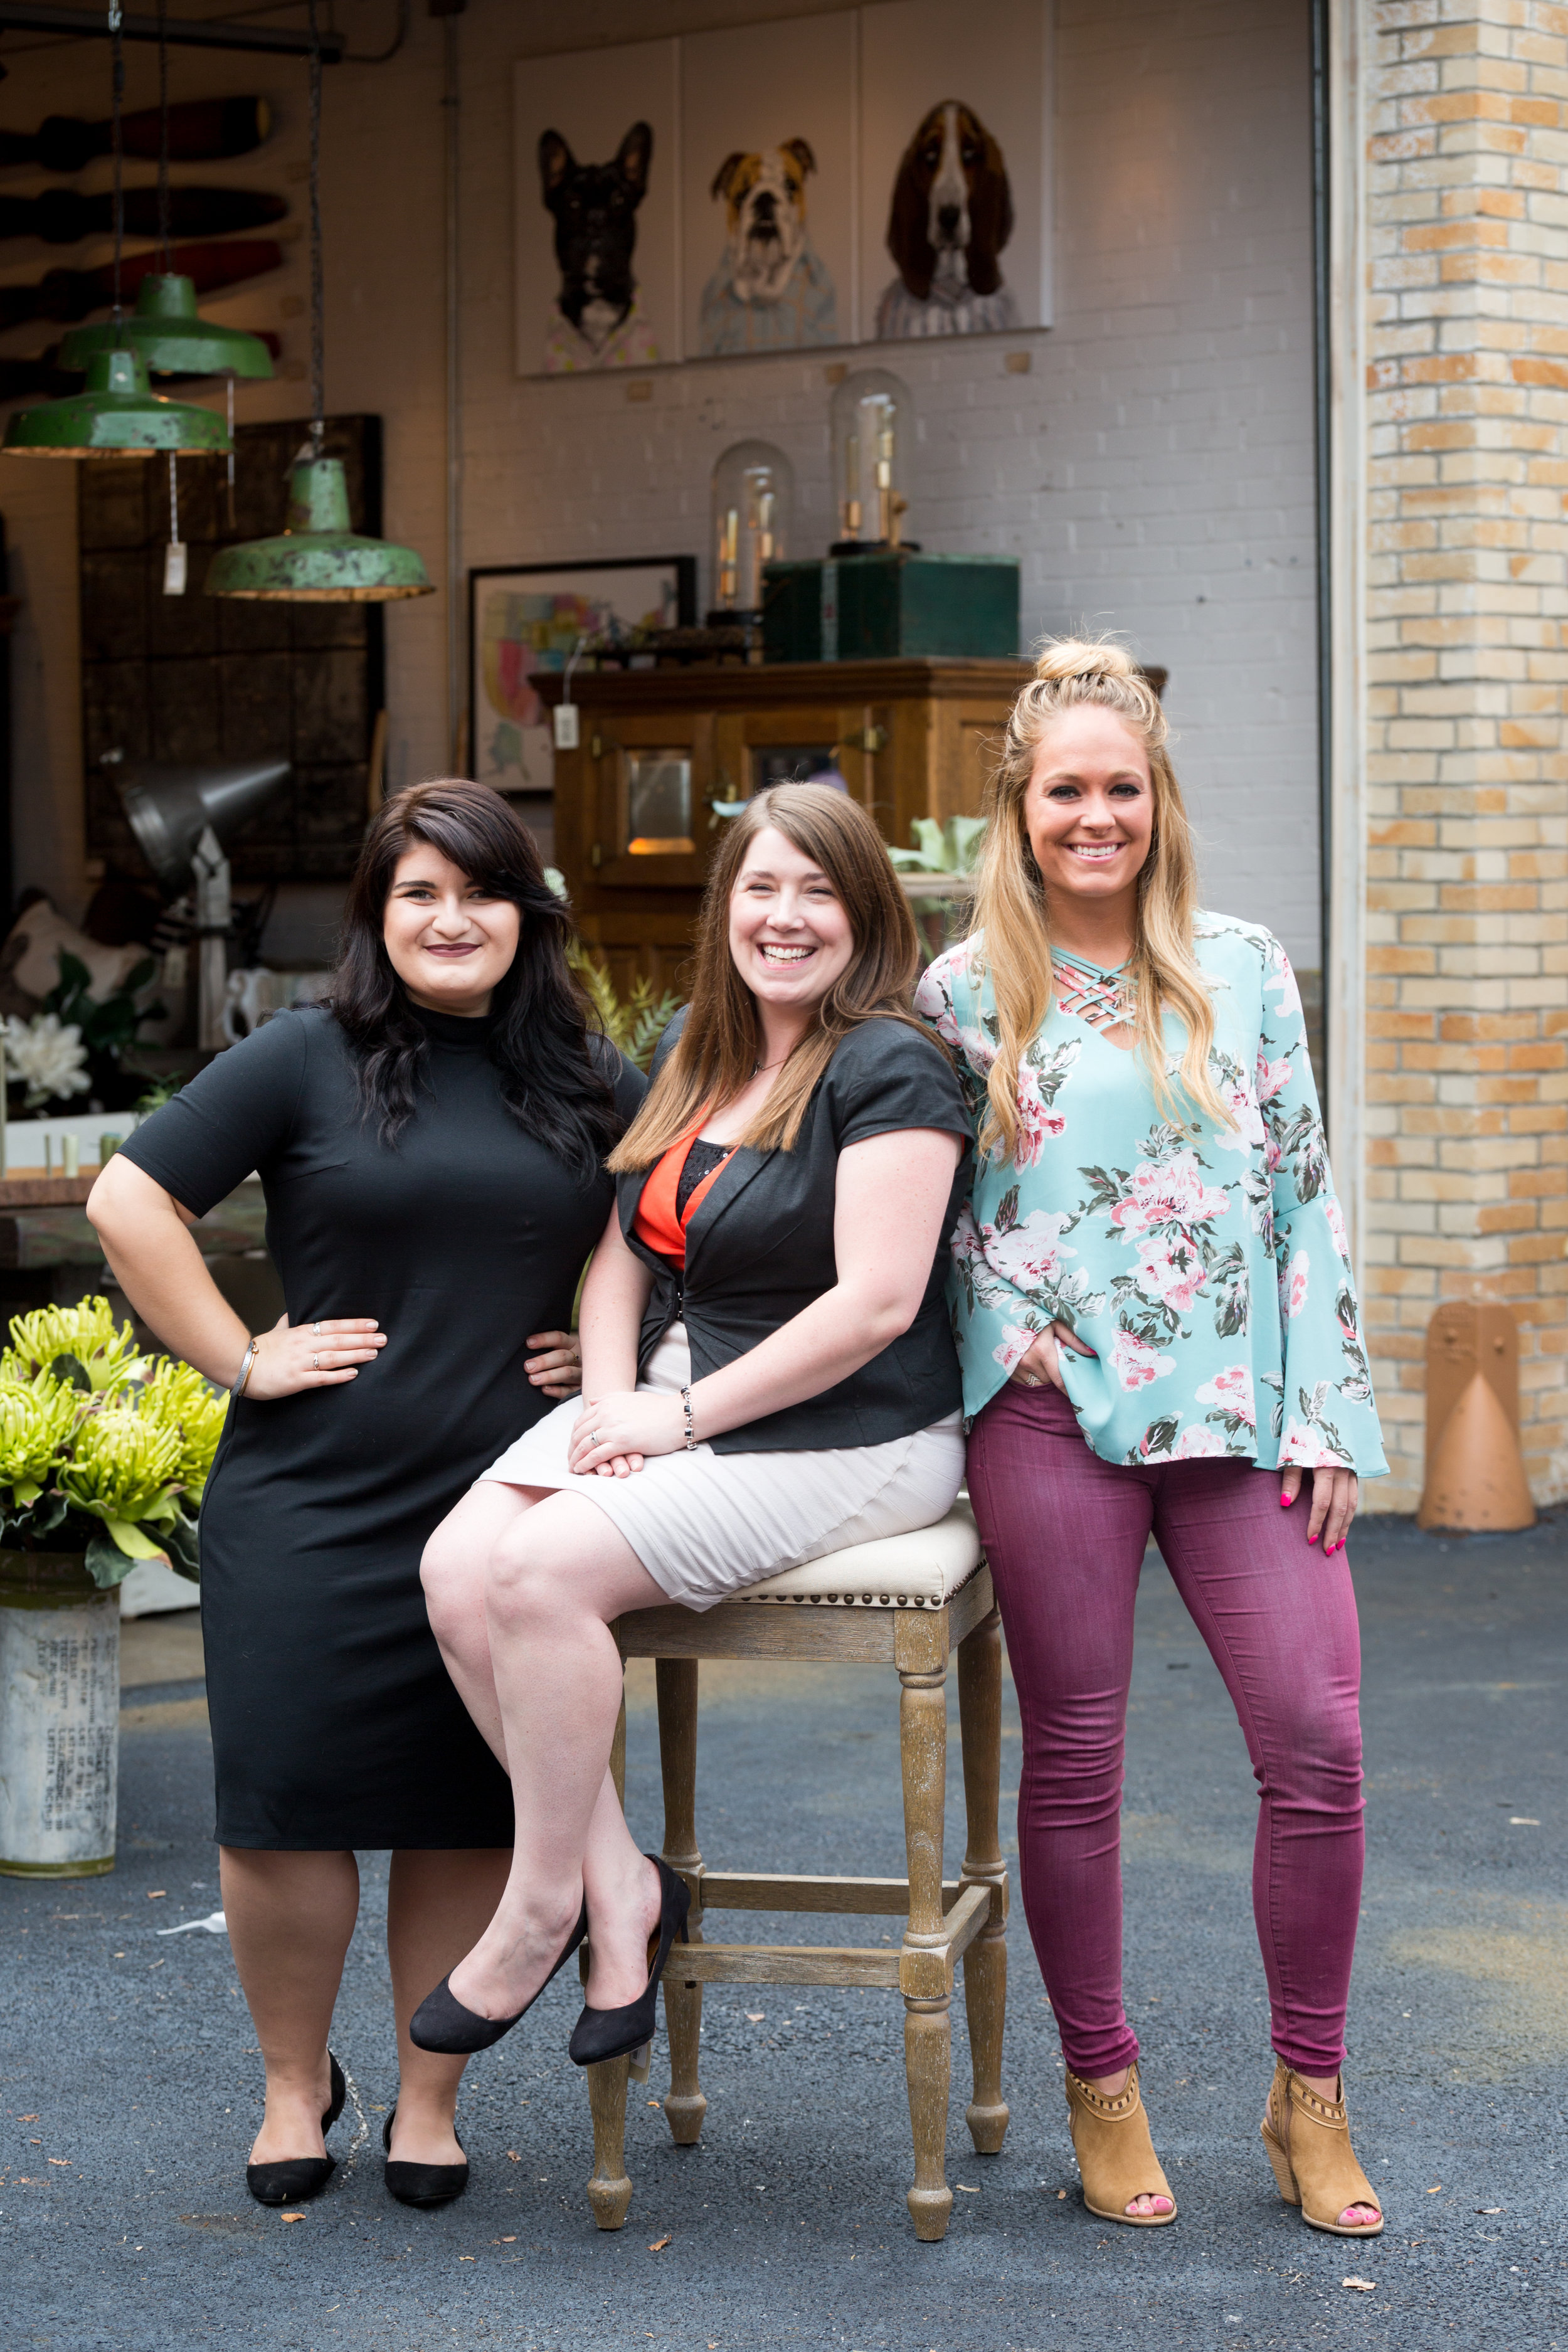 (left) Shell Sindle, Sales Associate ,Emily LaVoy, Store Manager, Shanley O'Neil, Sales Associate